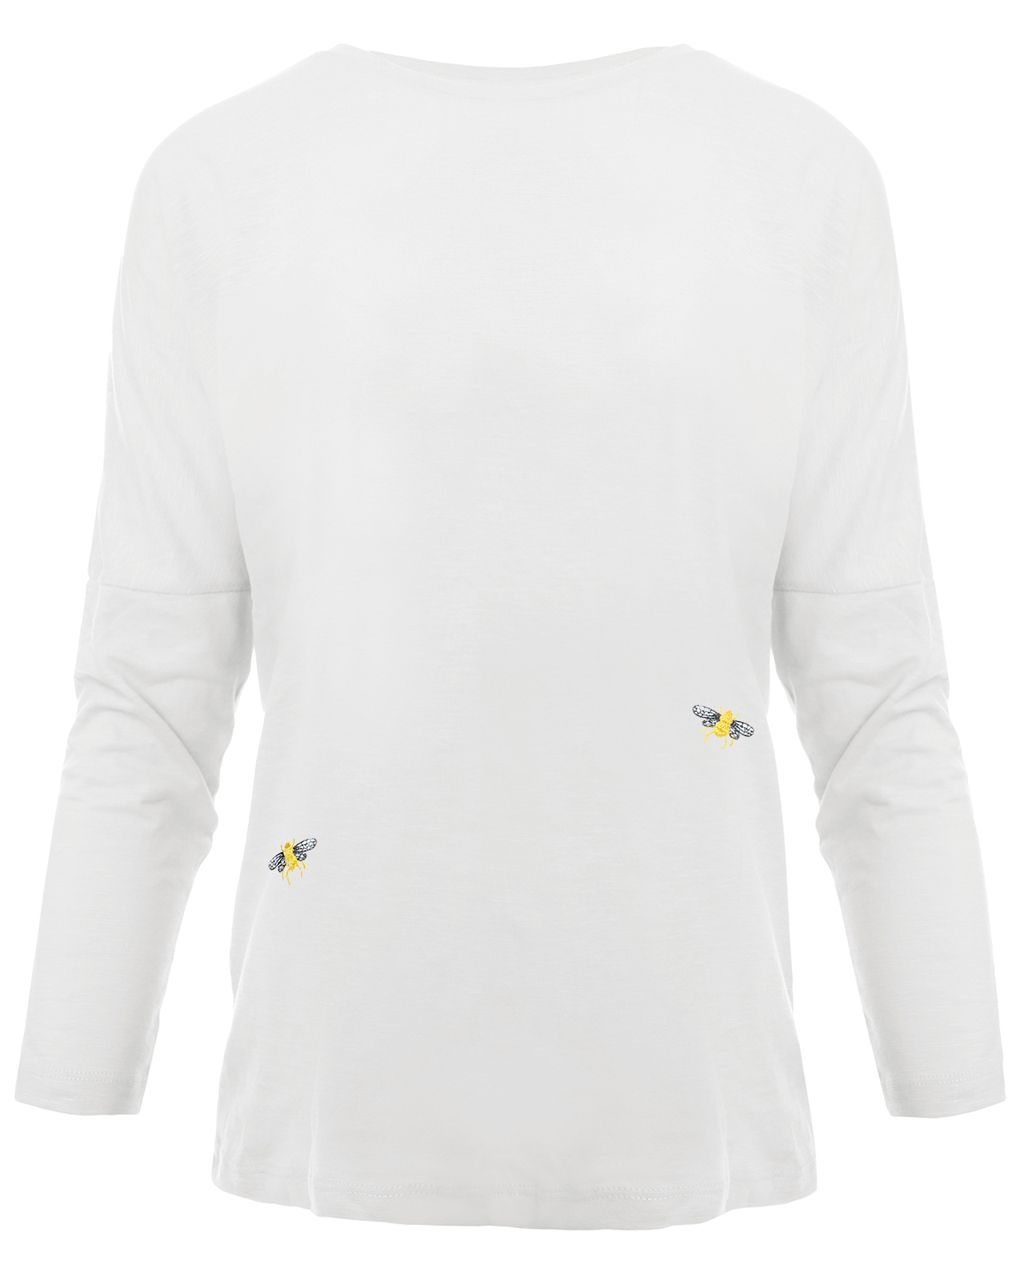 Bee Embroidered Dropped Shoulder T-Shirt White